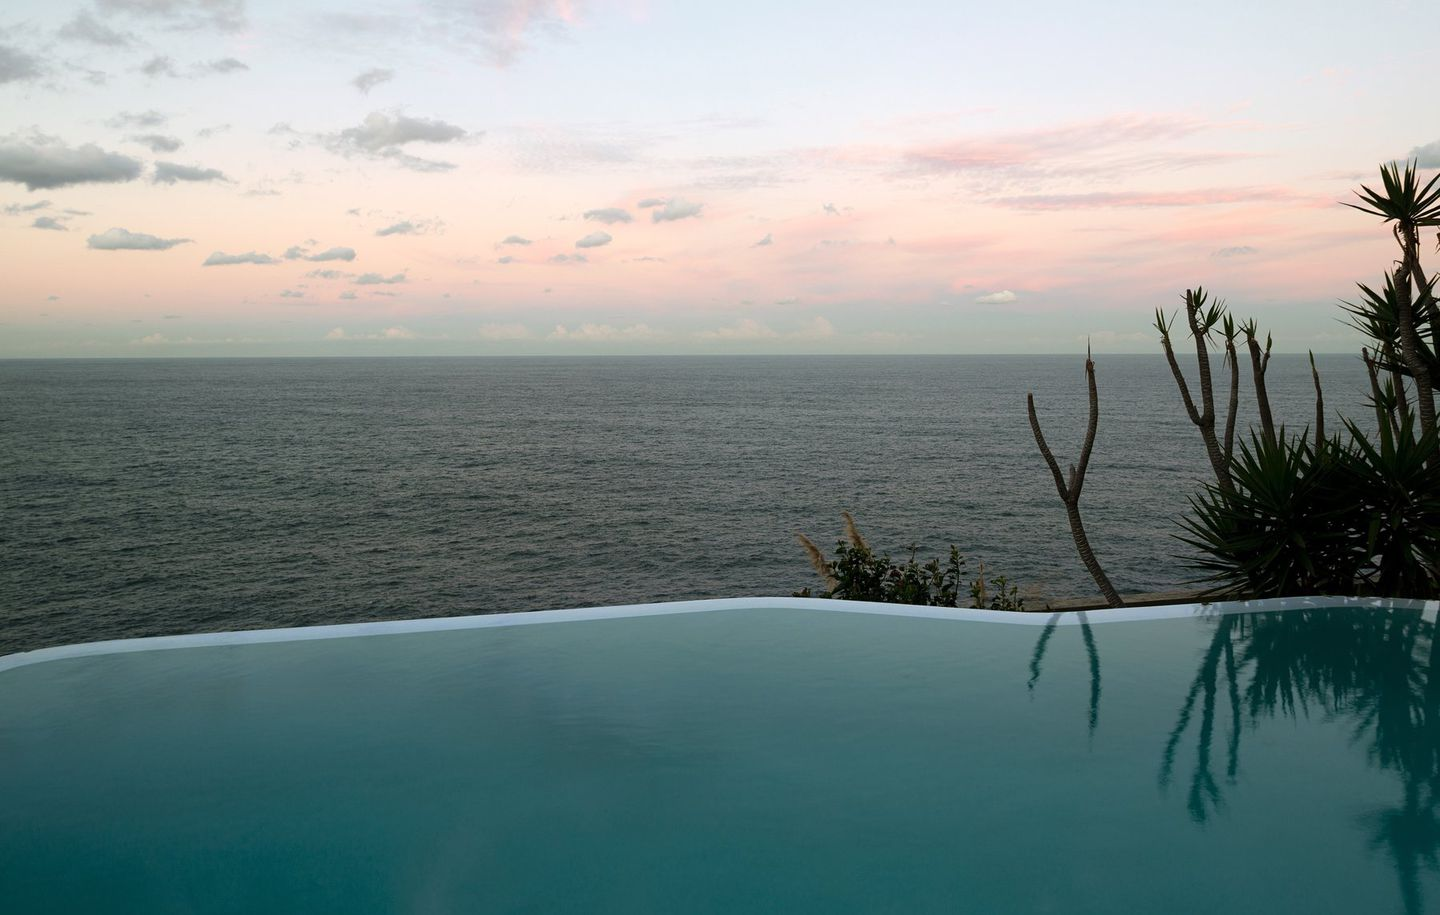 View of infinity pool overlooking ocean and horizon at cliff house in Dover Heights Sydney designed by Durbach Block Jaggers Architects